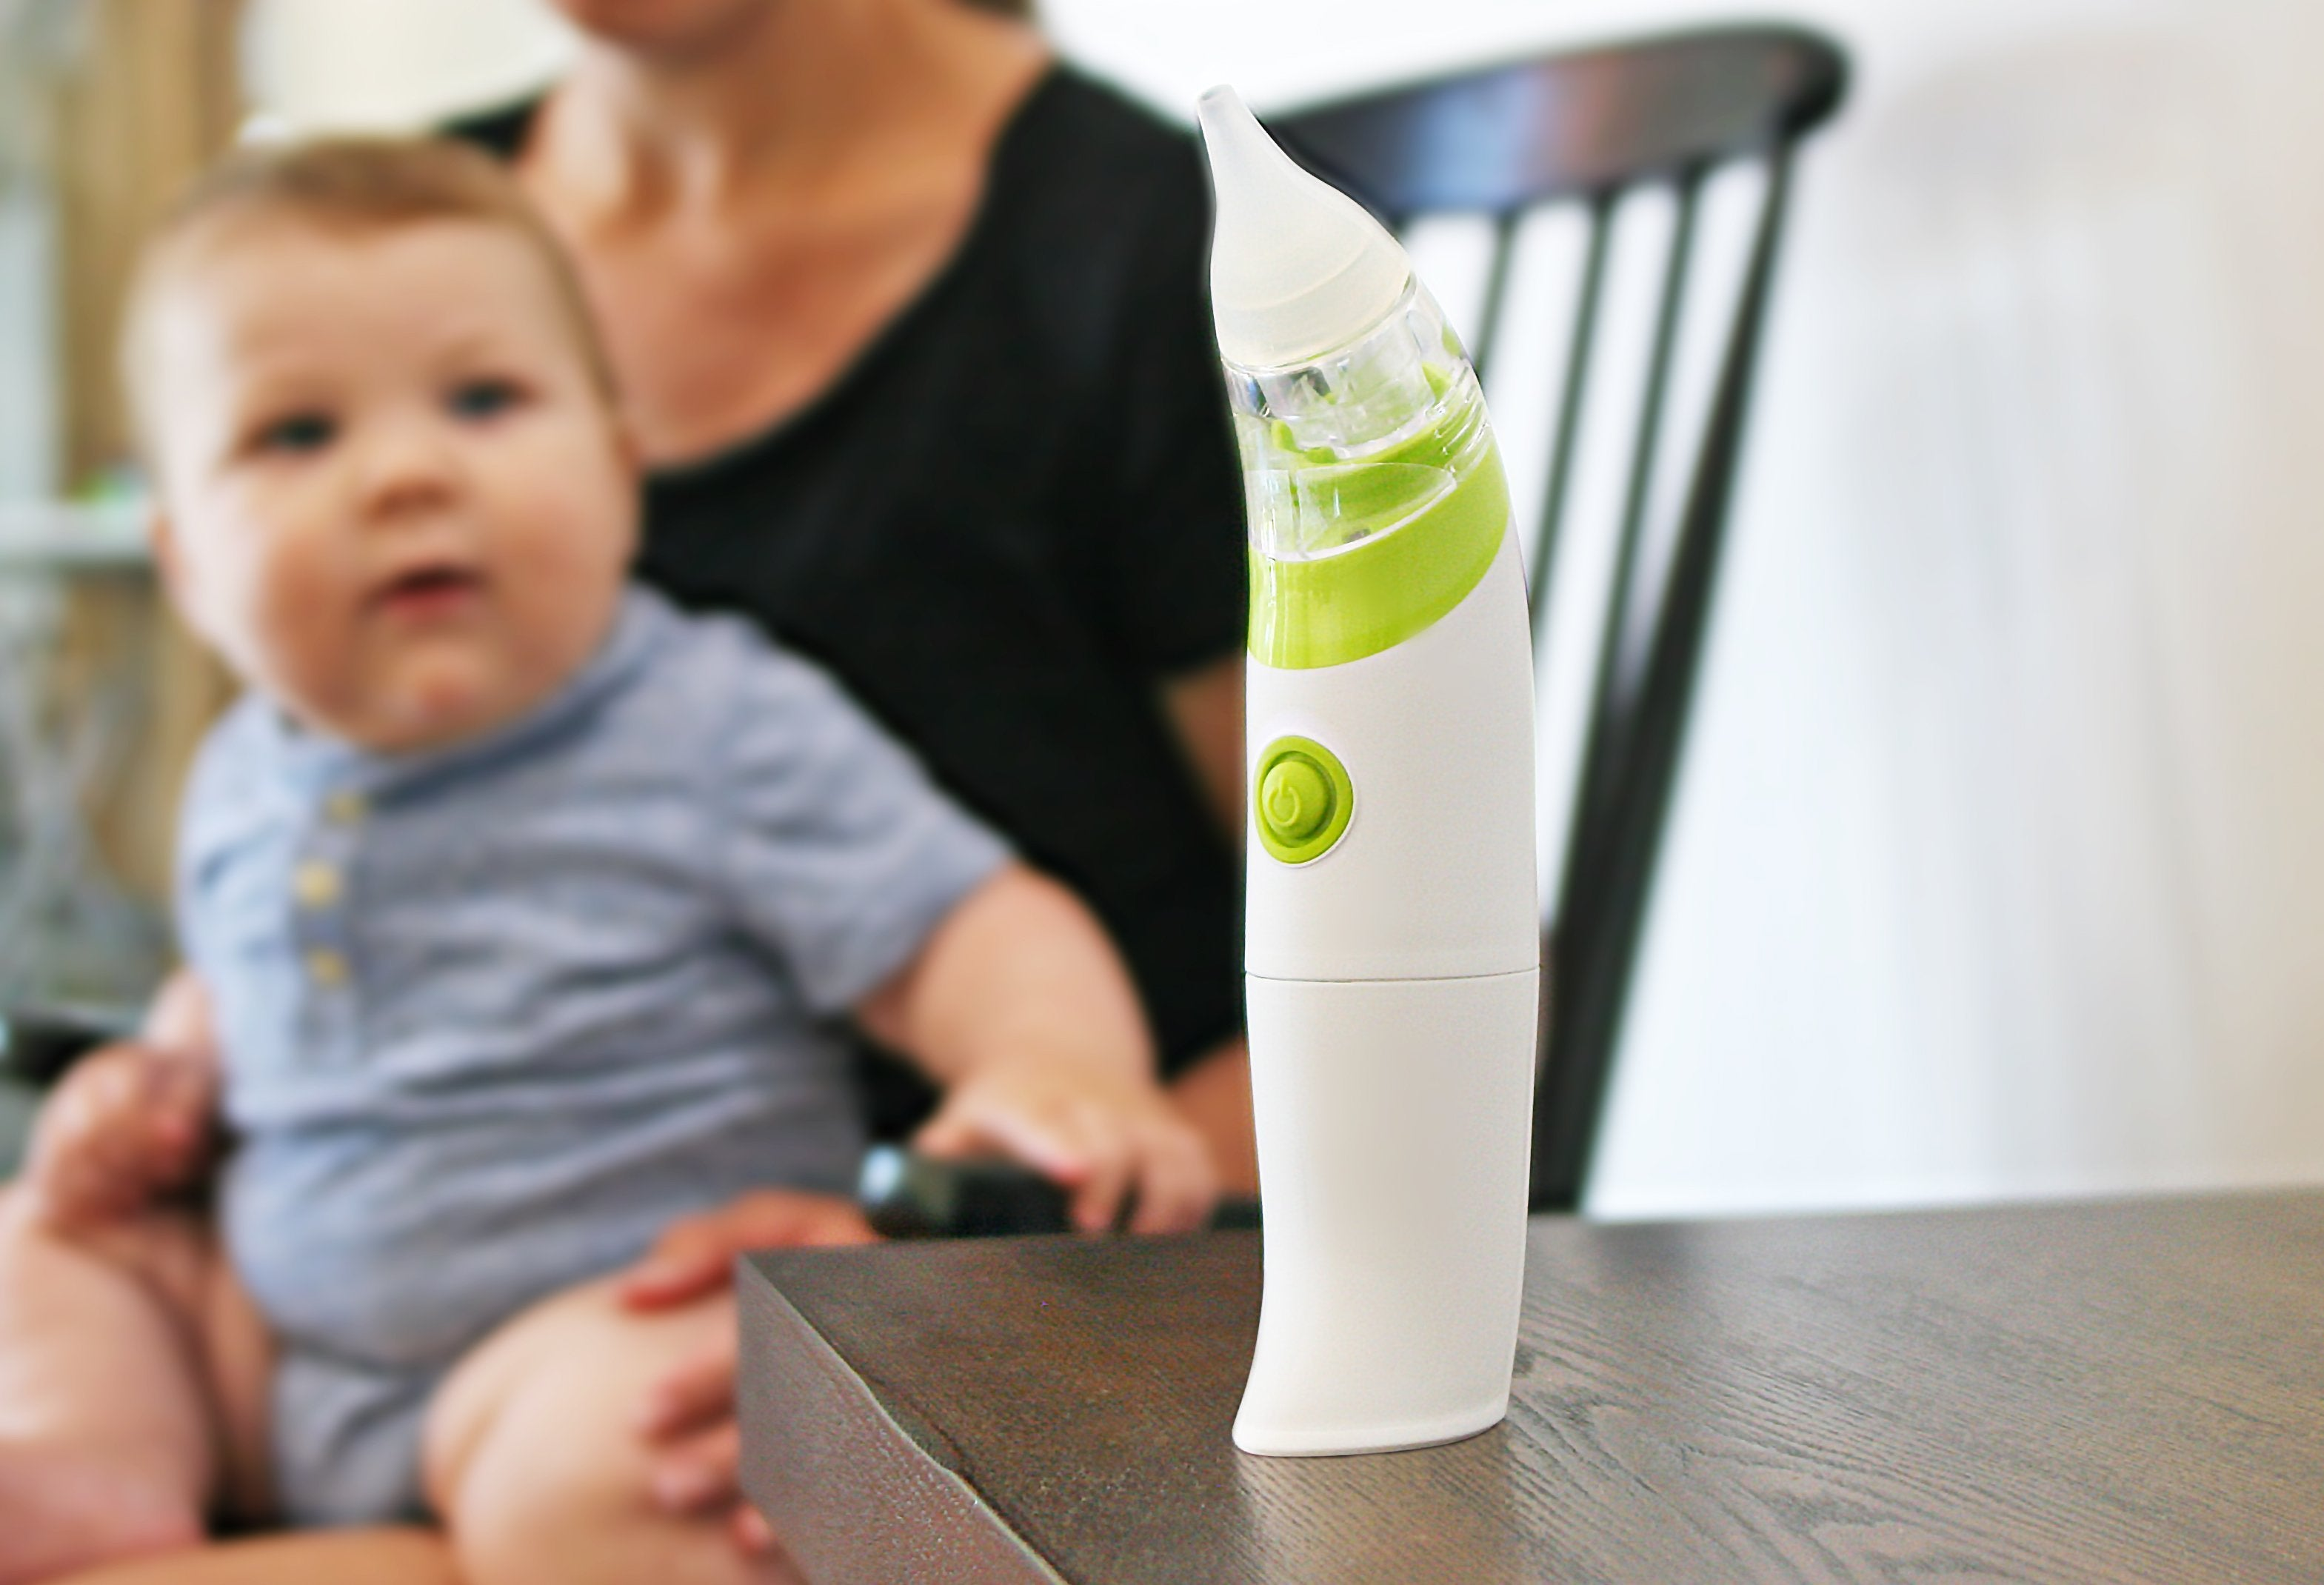 Zoli BREATHE Electric Nasal Aspirator